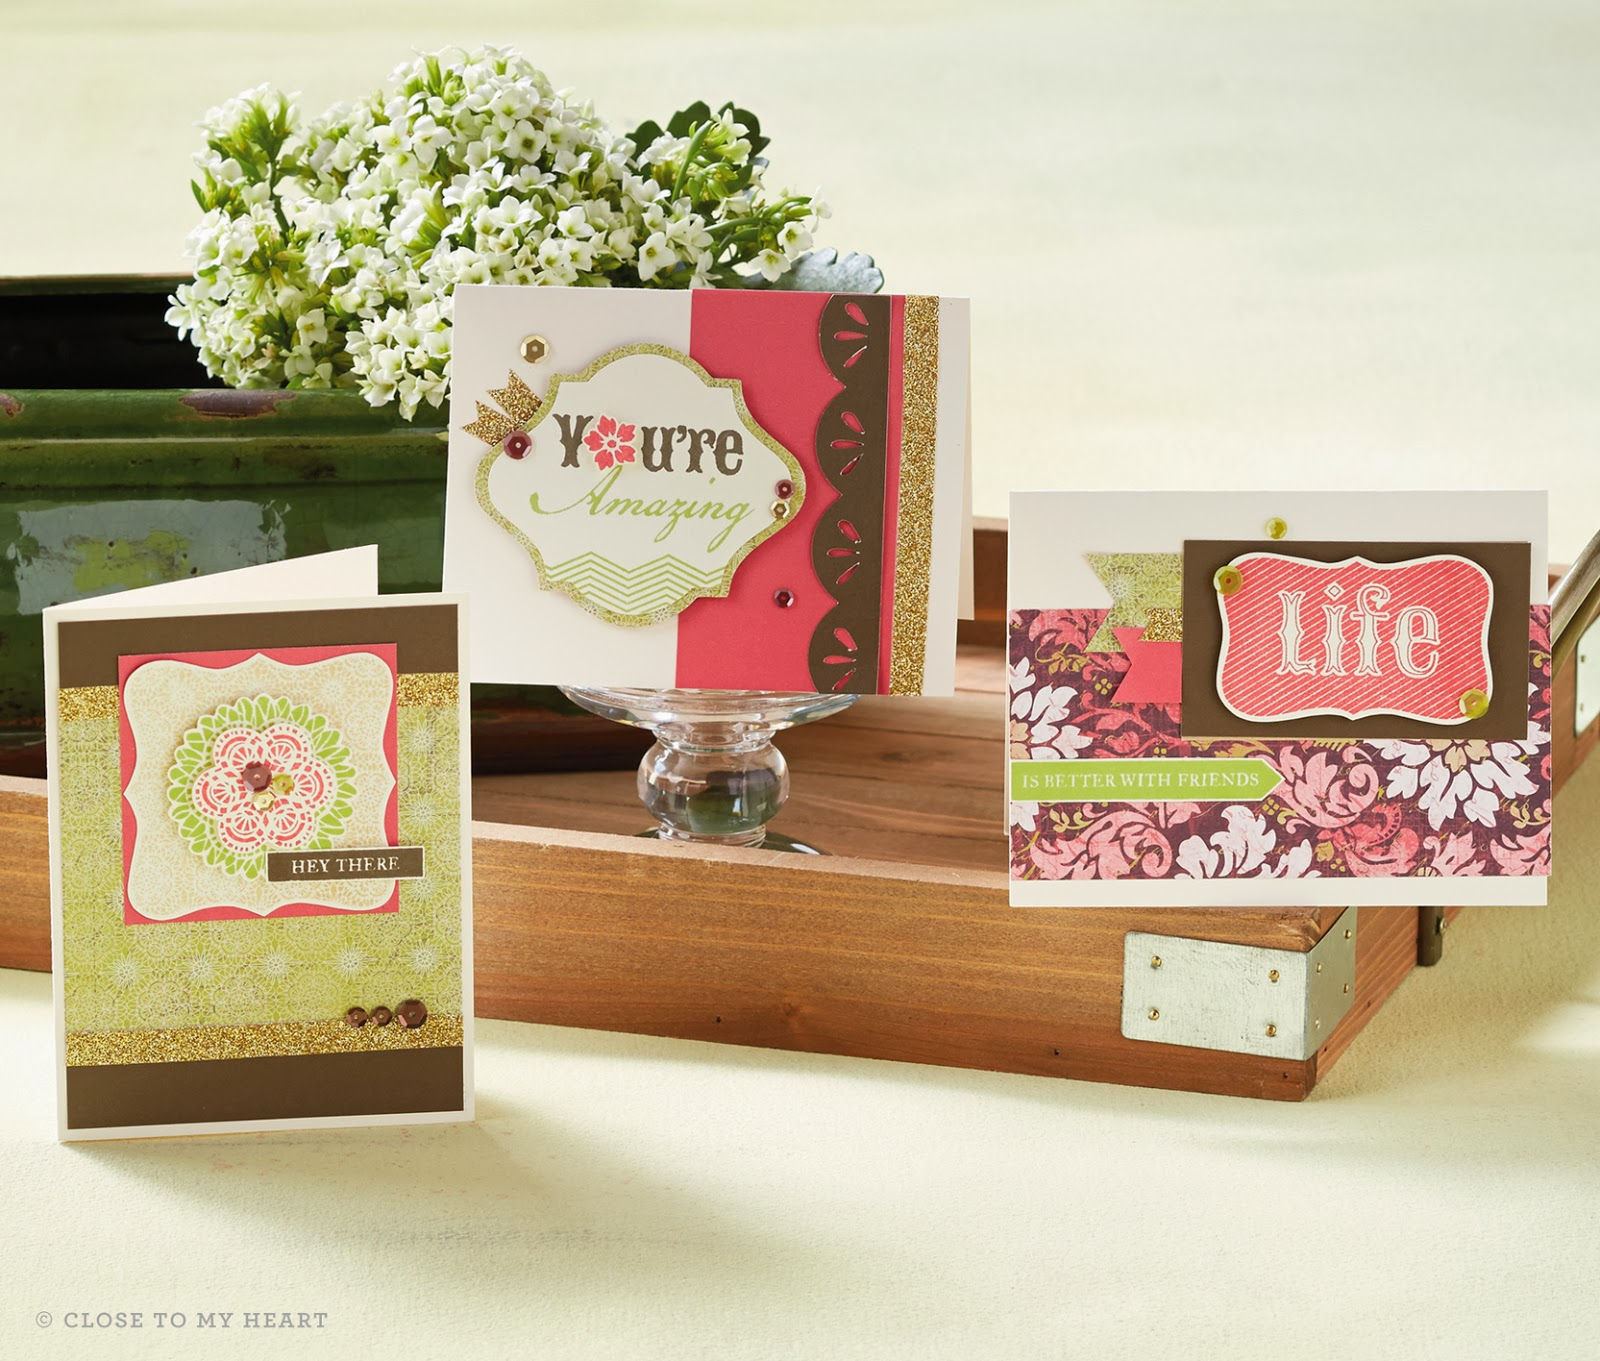 Ivy Lane Cardmaking Kit